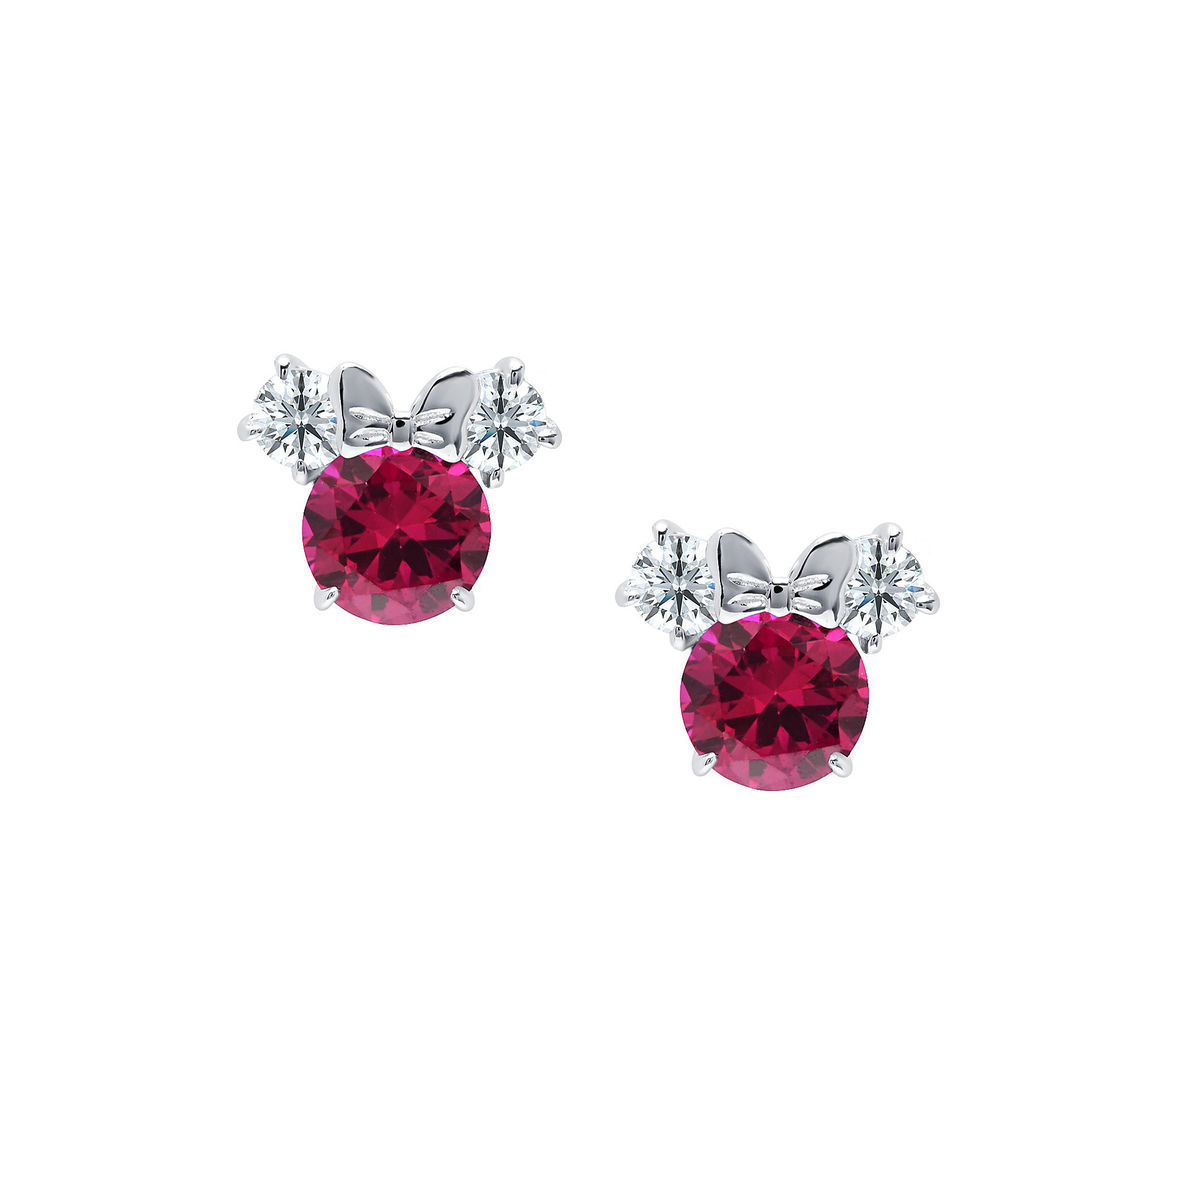 Disney Crislu Earrings - Minnie Mouse Birthstone - Platinum